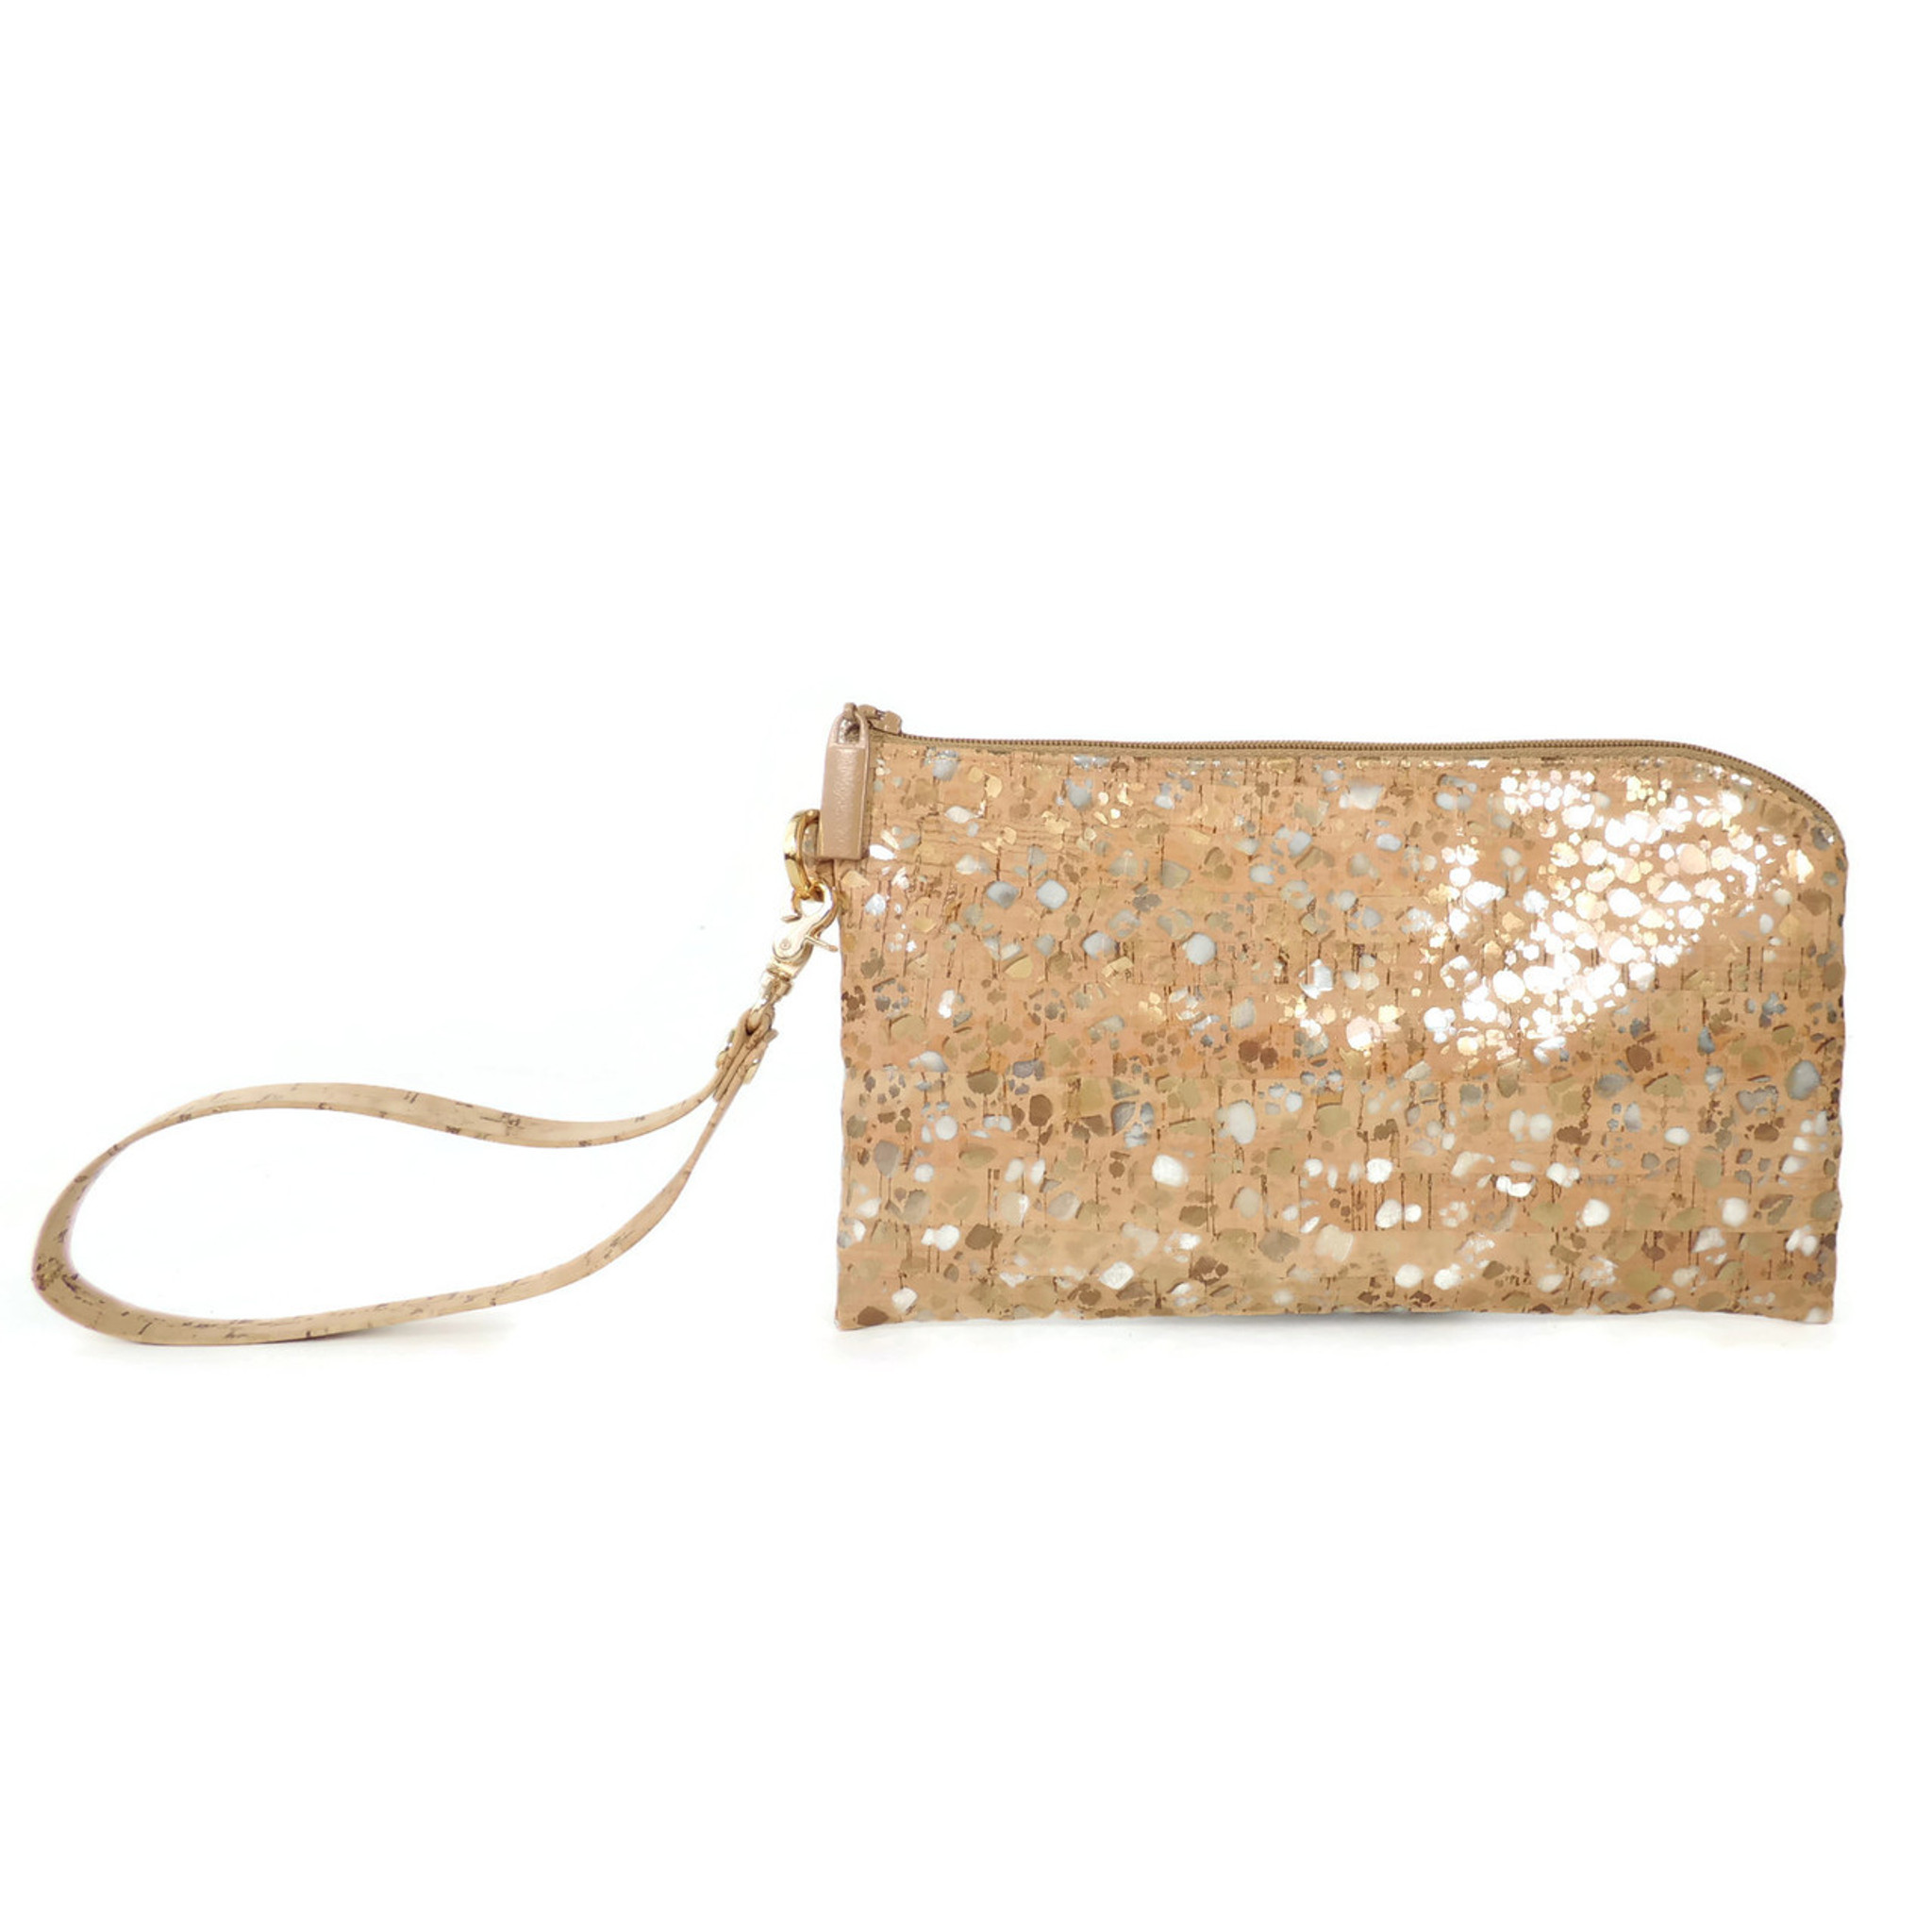 Phone Wristlet in Metallic Pebble Cork